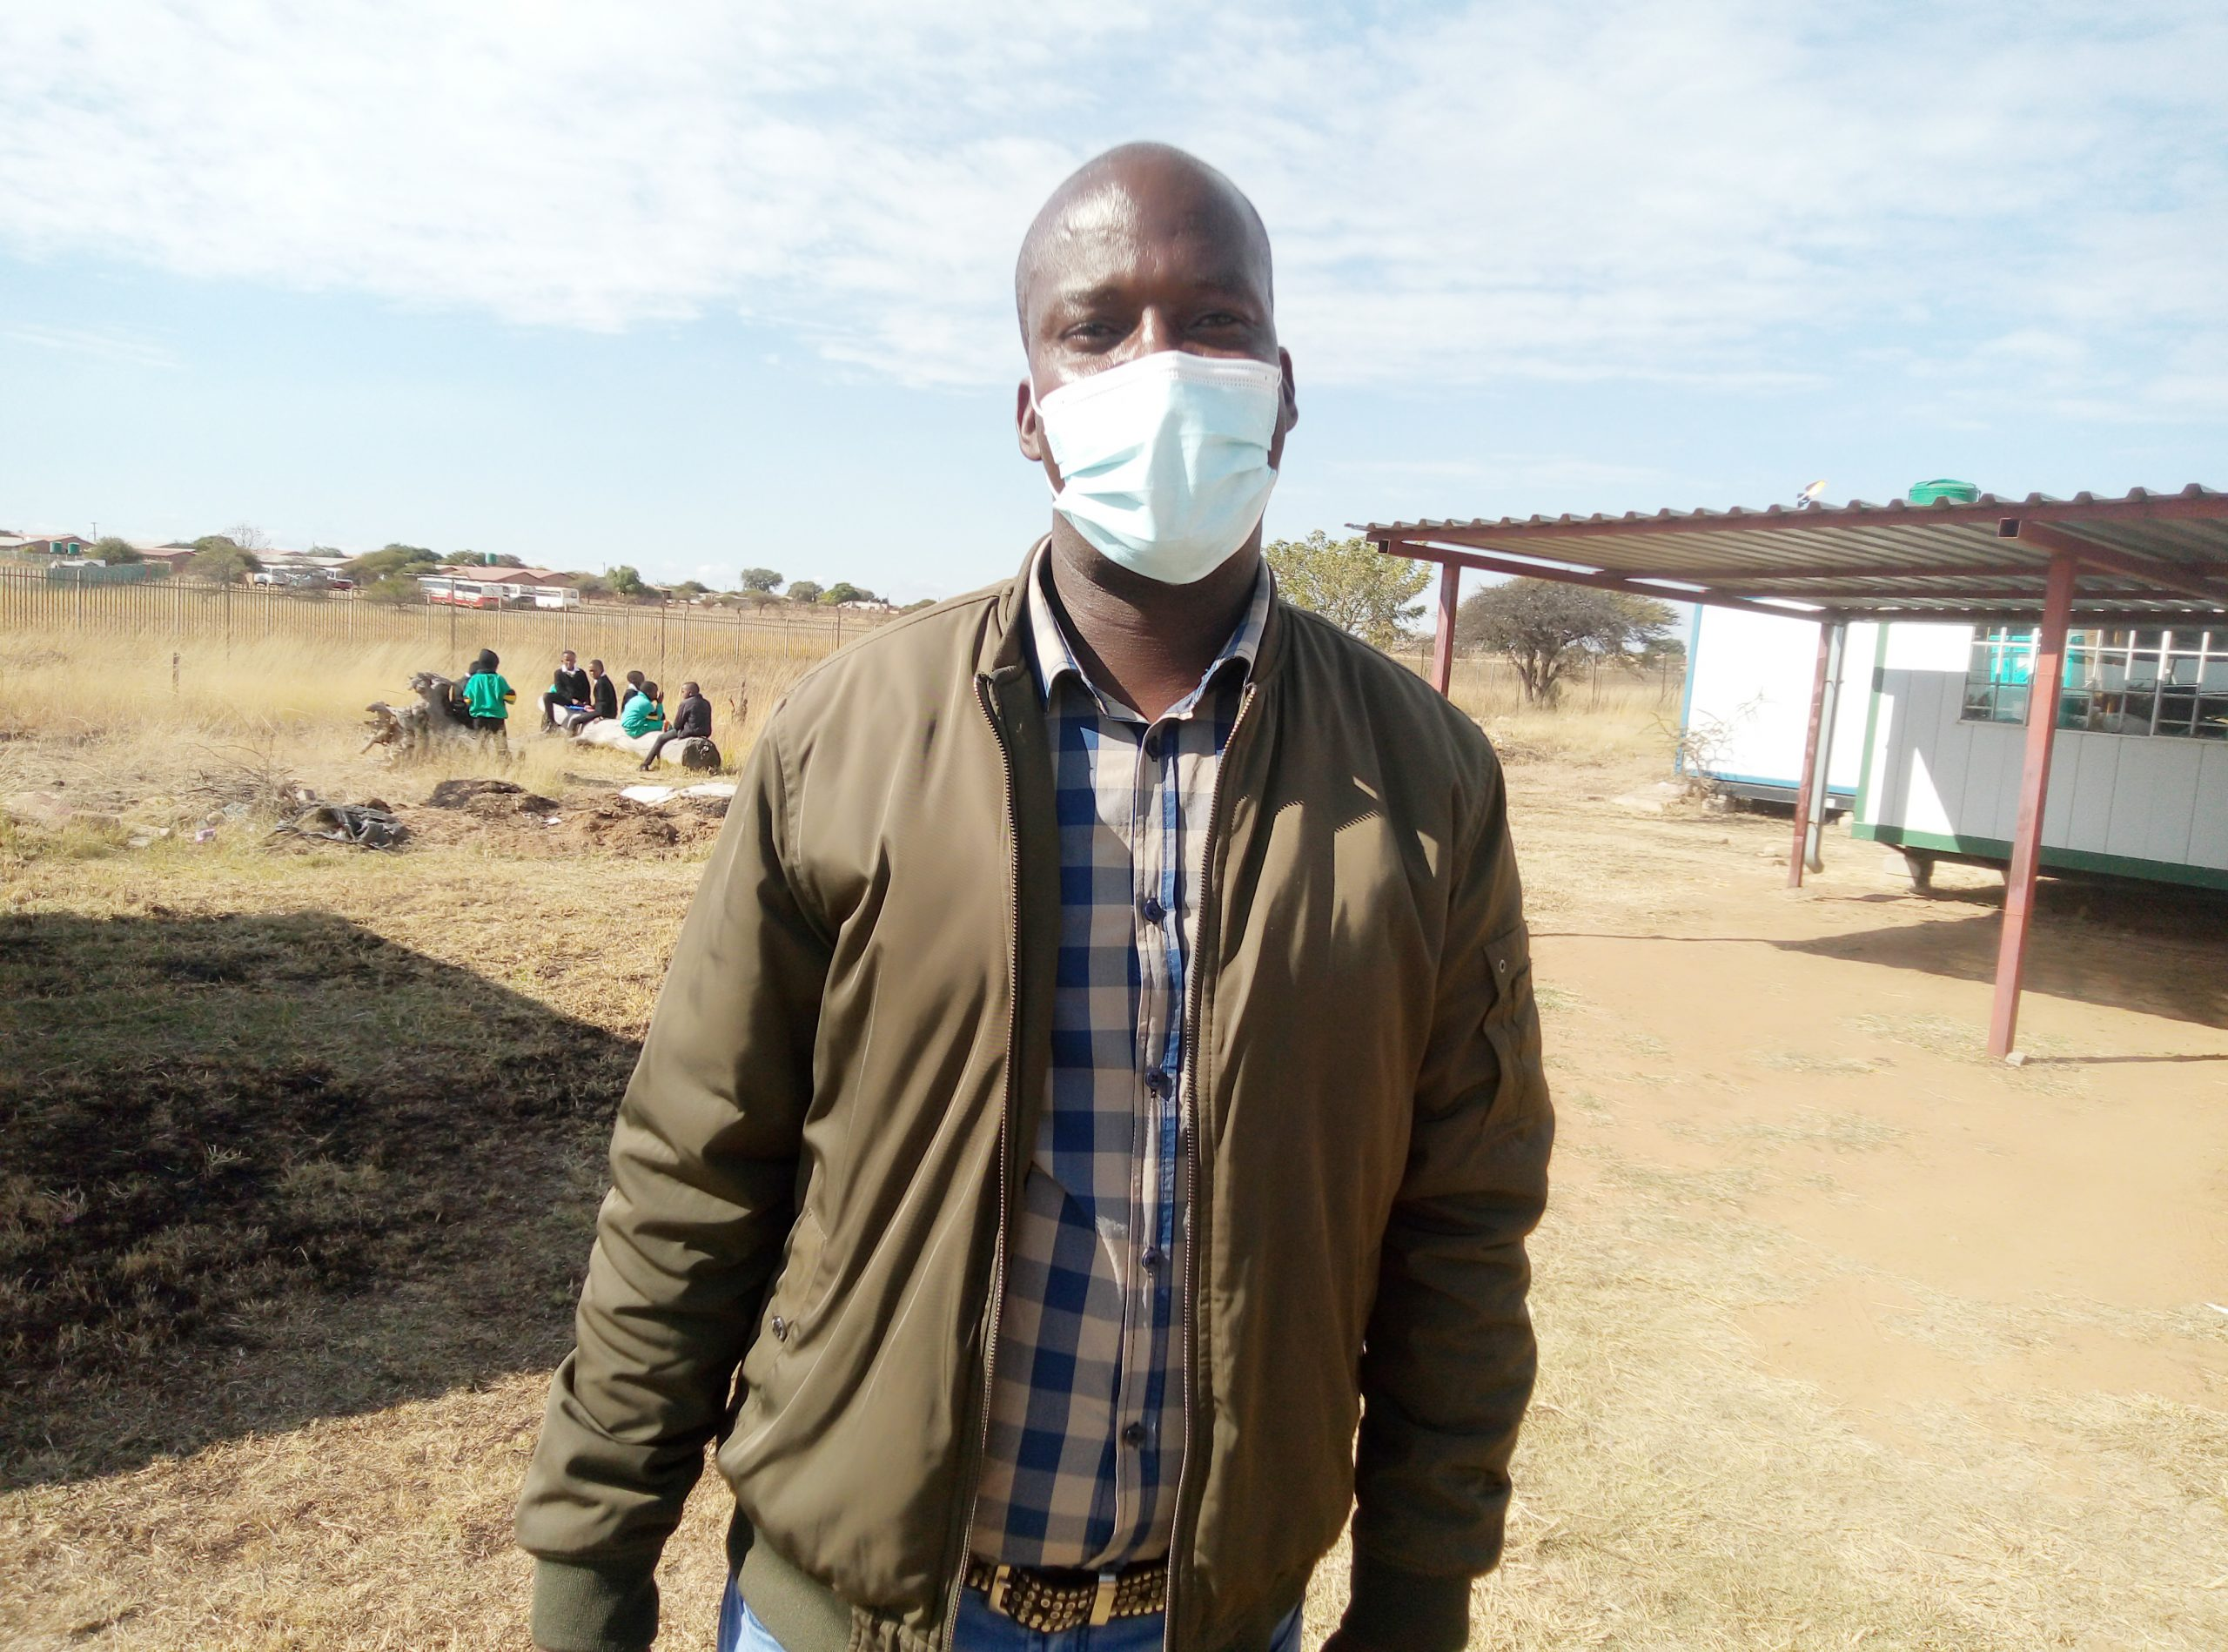 HOT OFF THE PRESS : Masia ; We want to revitalise our street committees, CPF's and once the vandalised offices are fixed.